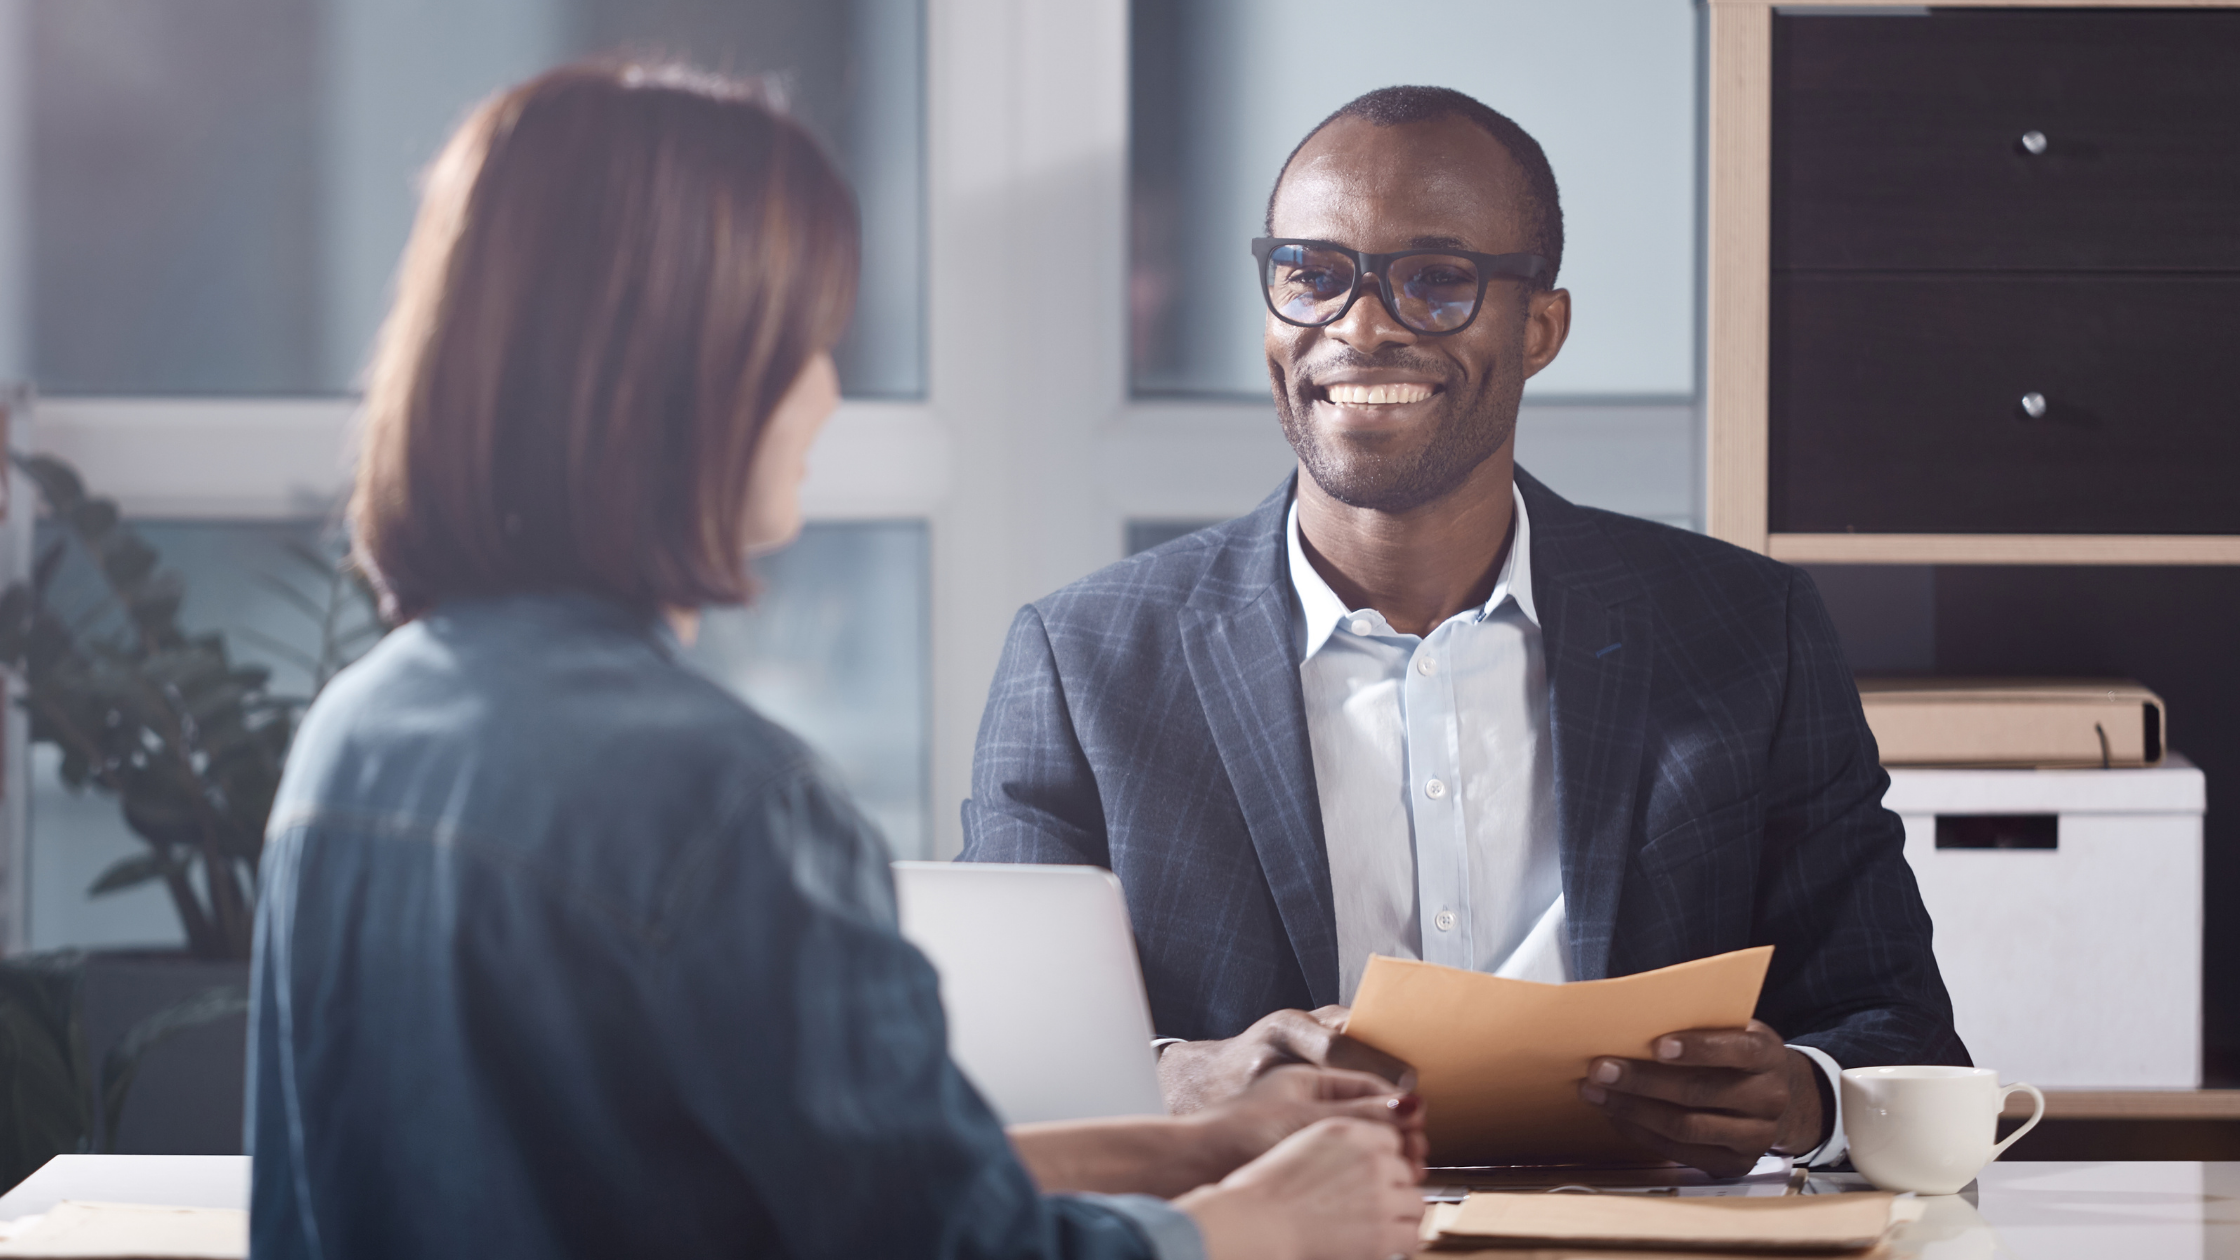 3 real estate conversations to master